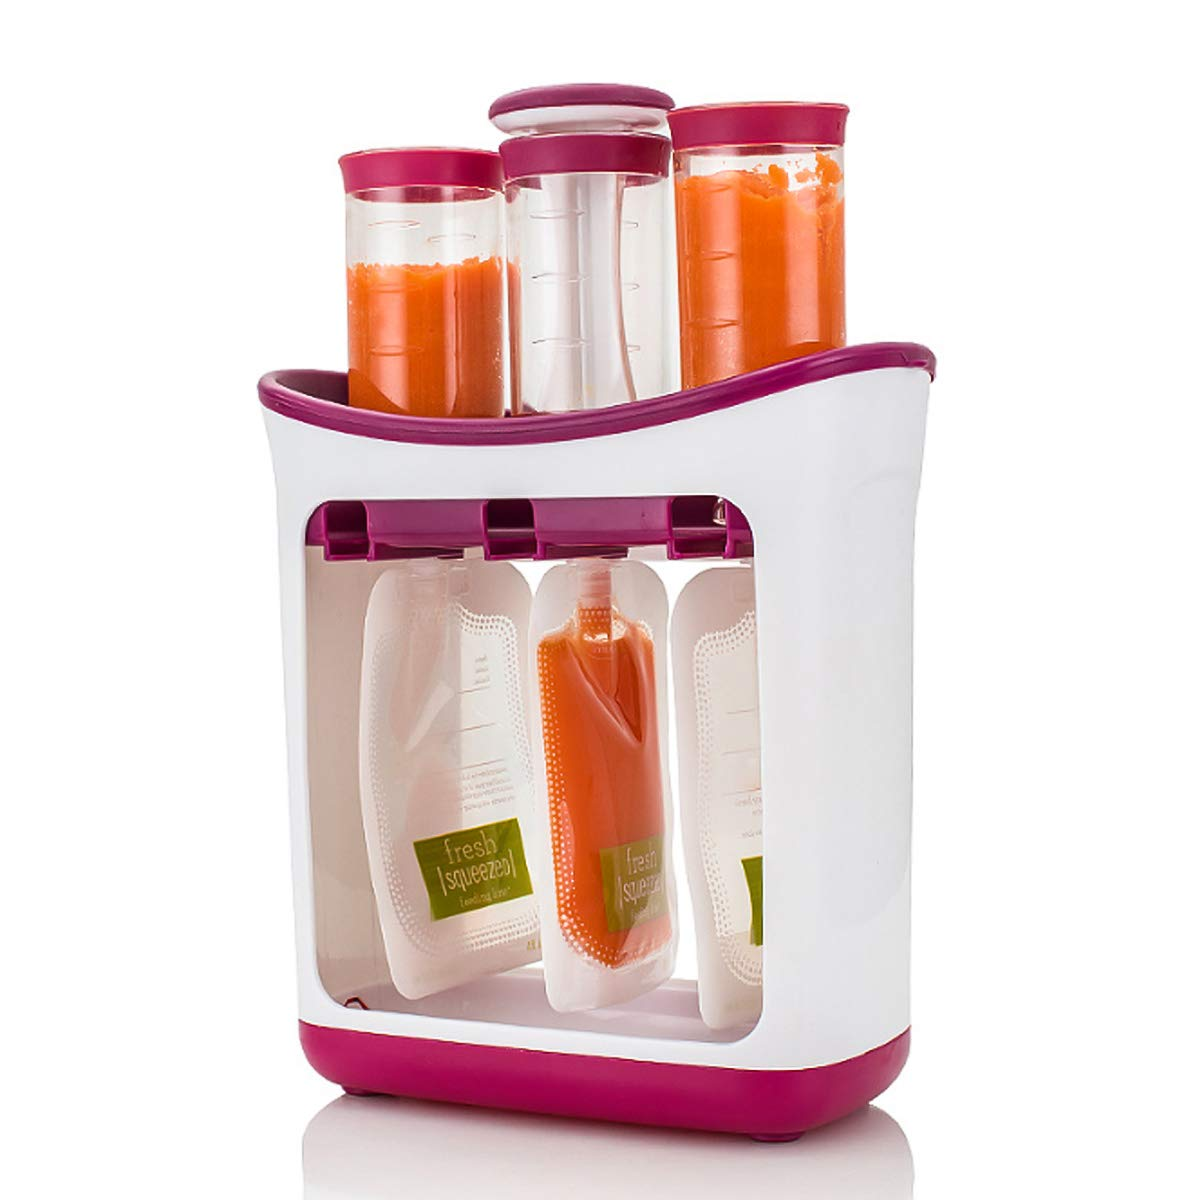 PUSEKY Baby Food Squeeze Station Homemade Fresh Fruit Juicer Infant Toddler Food Maker with Storage Bags